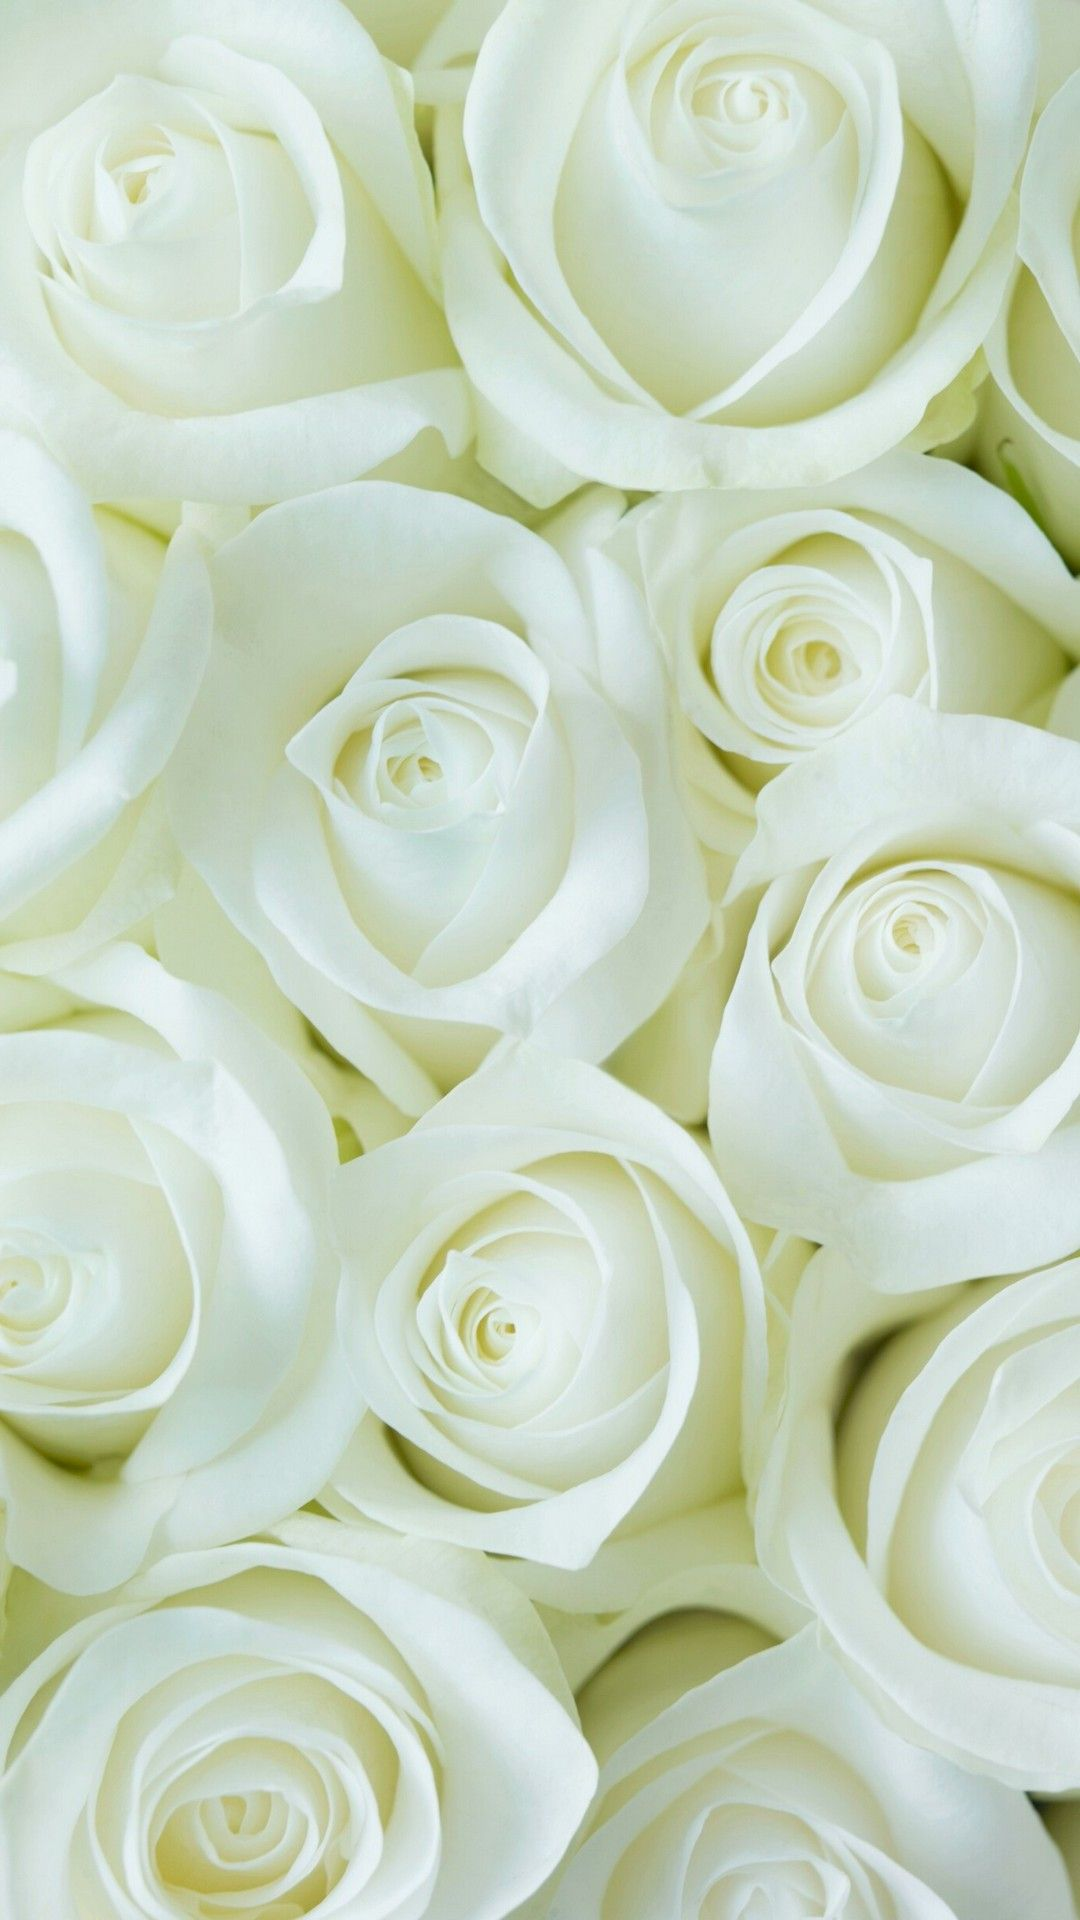 white flower wallpaper for mobile android | best hd wallpapers